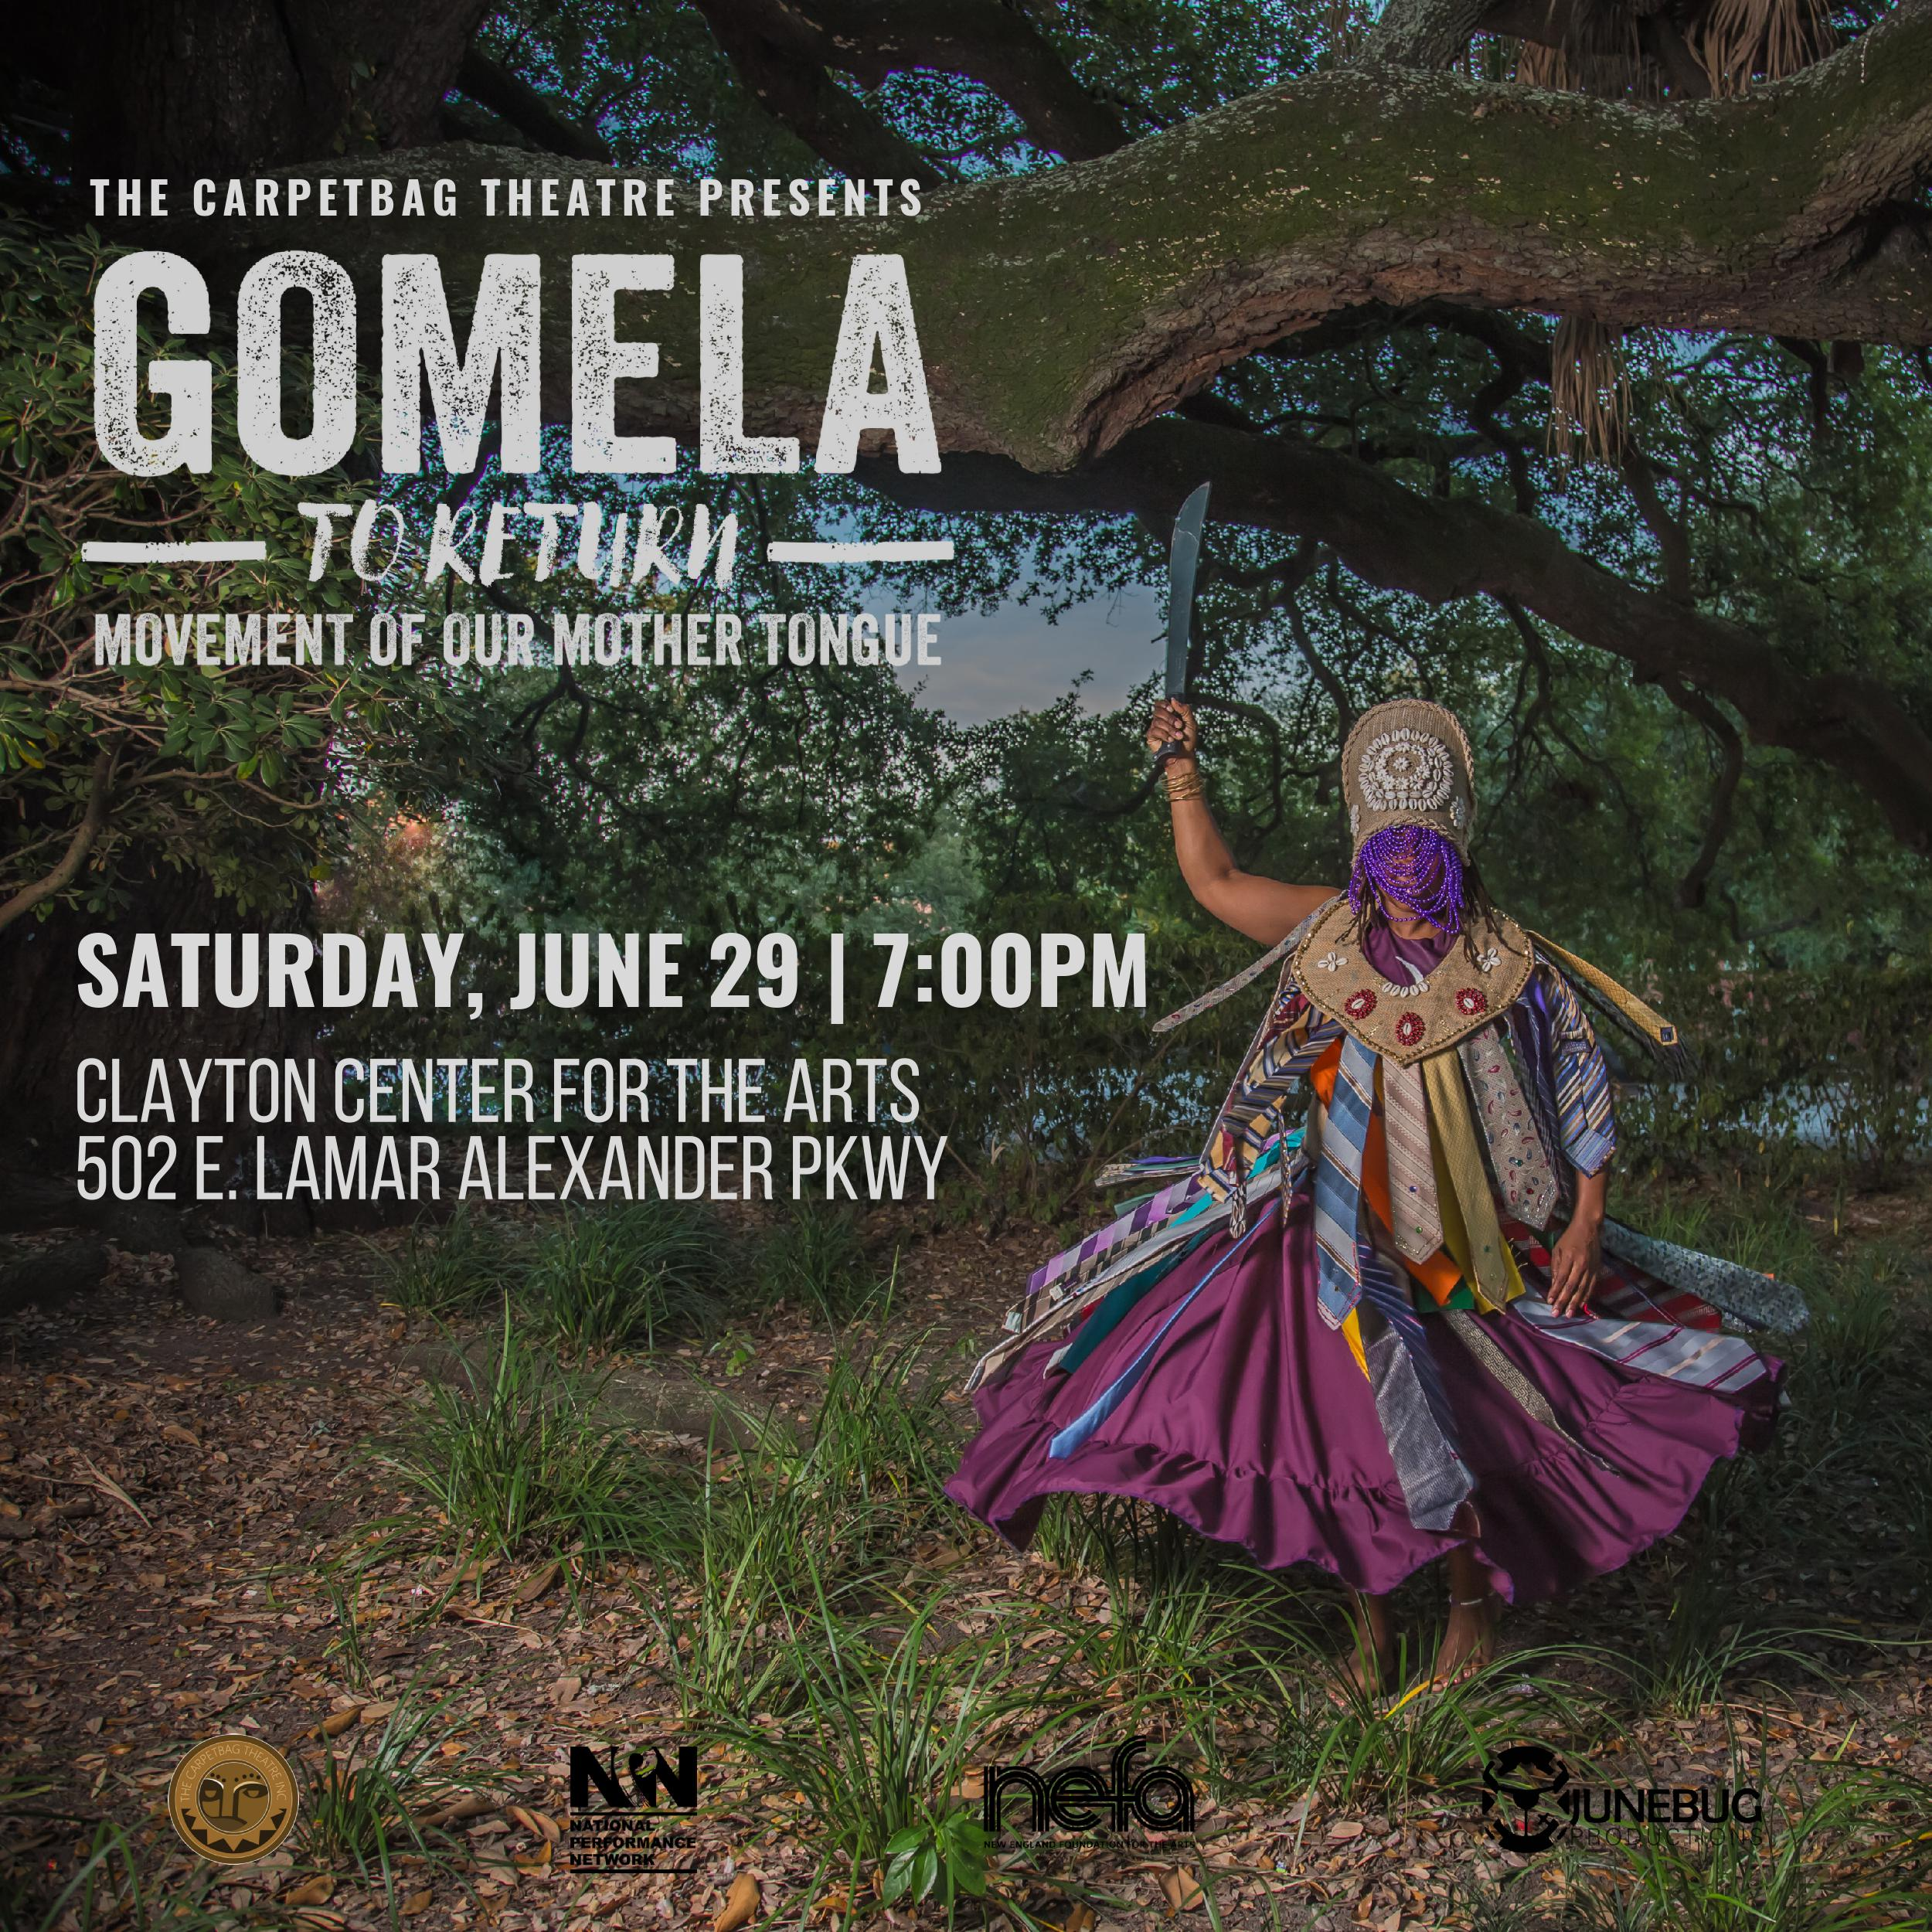 Our Next Production… - Gomela is an experience of collective memories passed down from generation to generation, a tapestry woven by a group of multi-disciplinary artists who represent the diversity of African Americans who call New Orleans home. Gomela is based on hope, survival, courage and the resilience that exists in the face of oppression. Get tickets NOW!